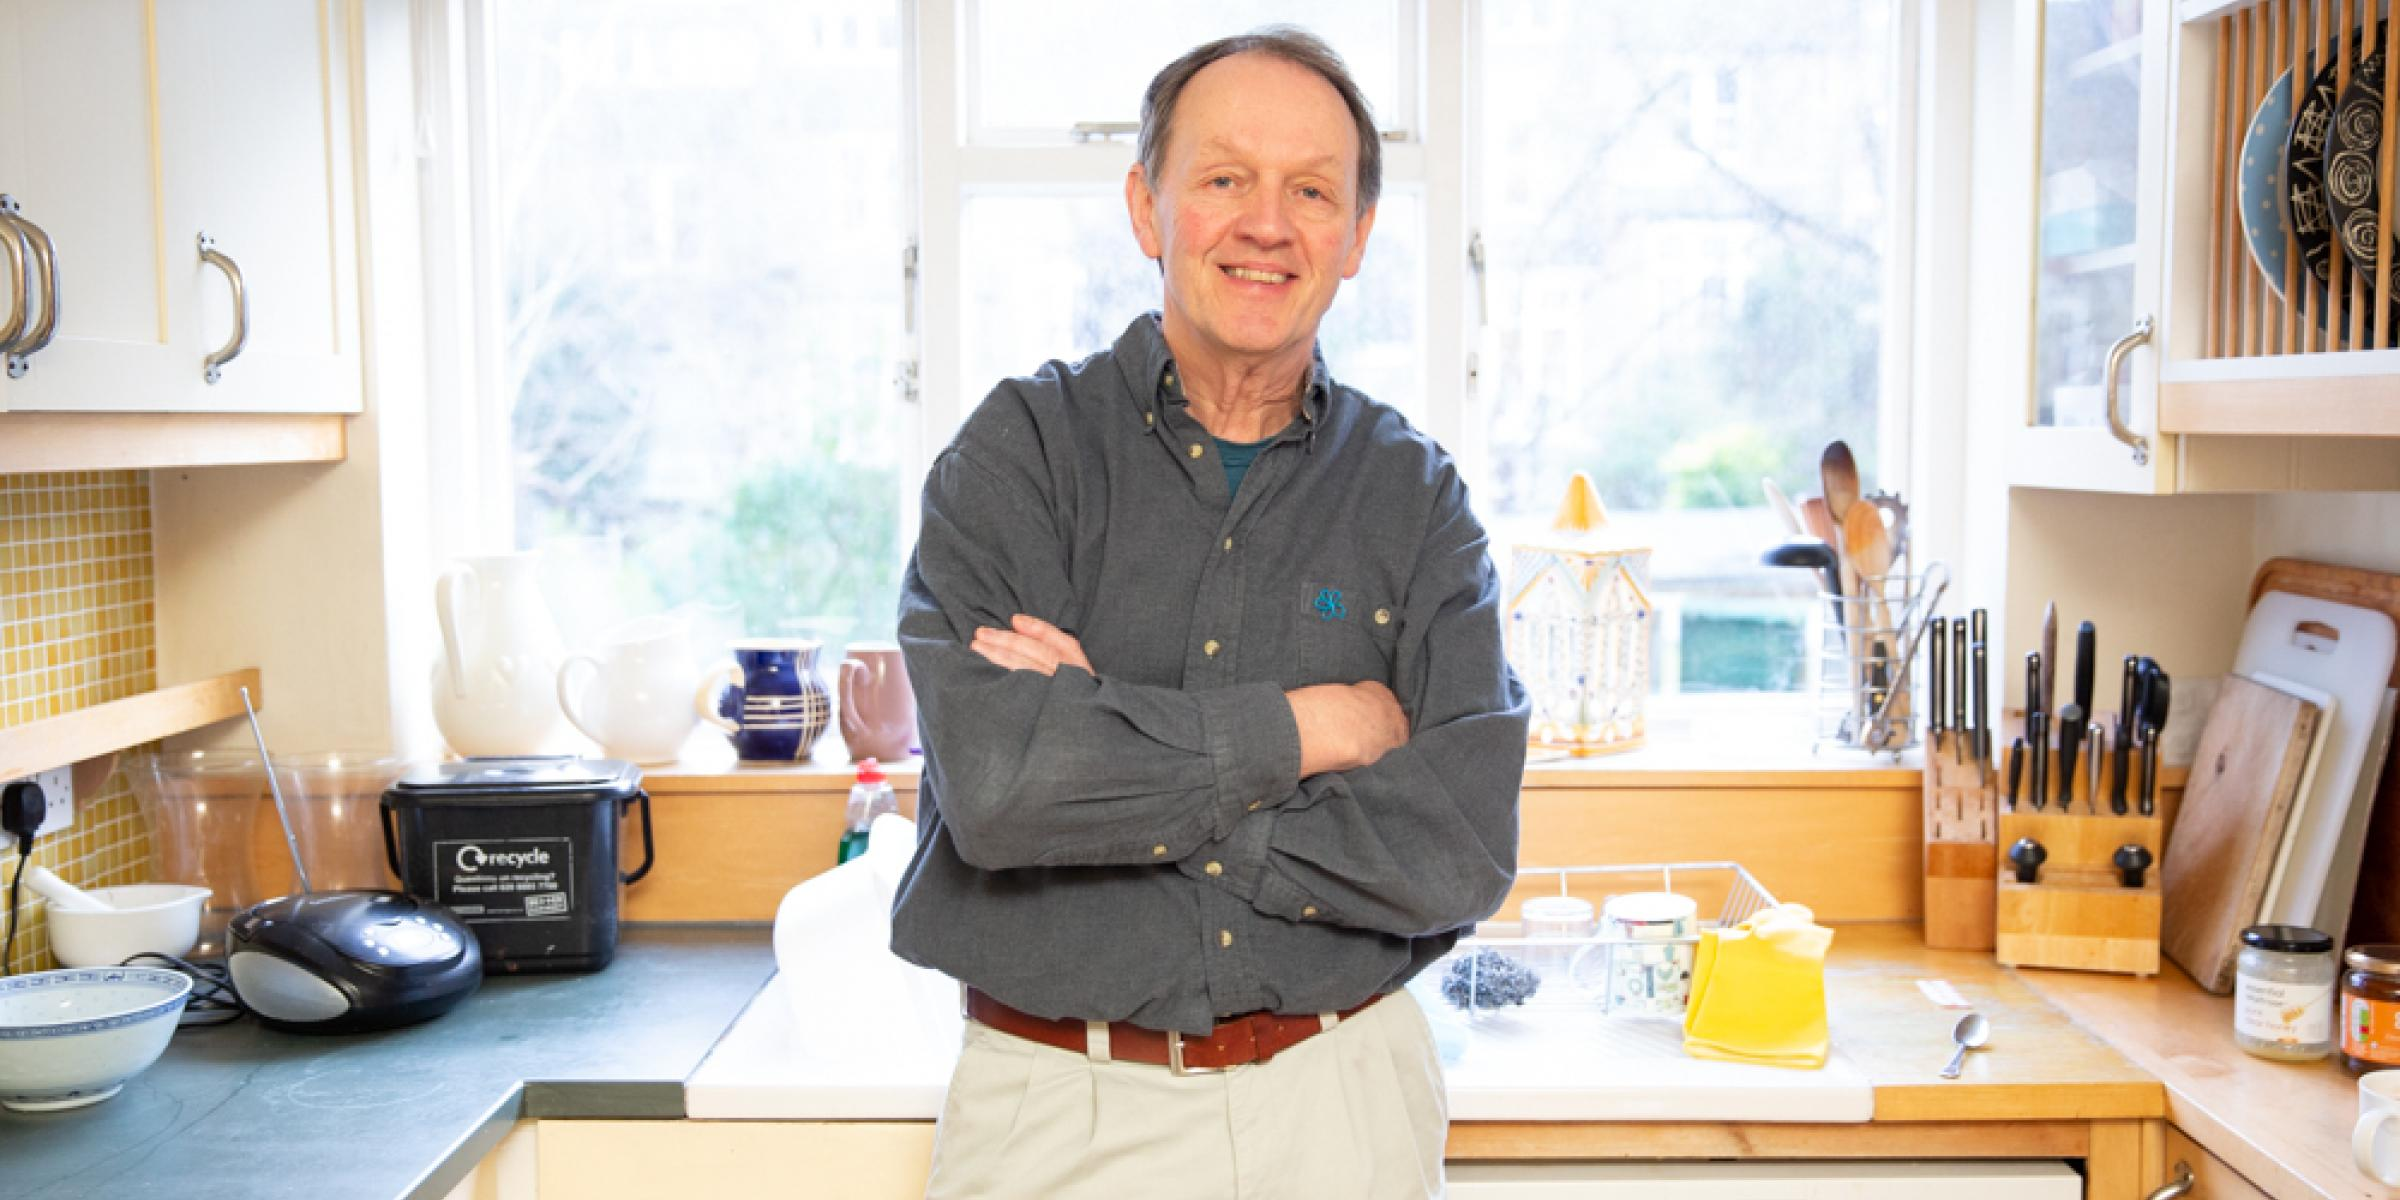 Kevin Whately smiling in his kitchen with his arms folded